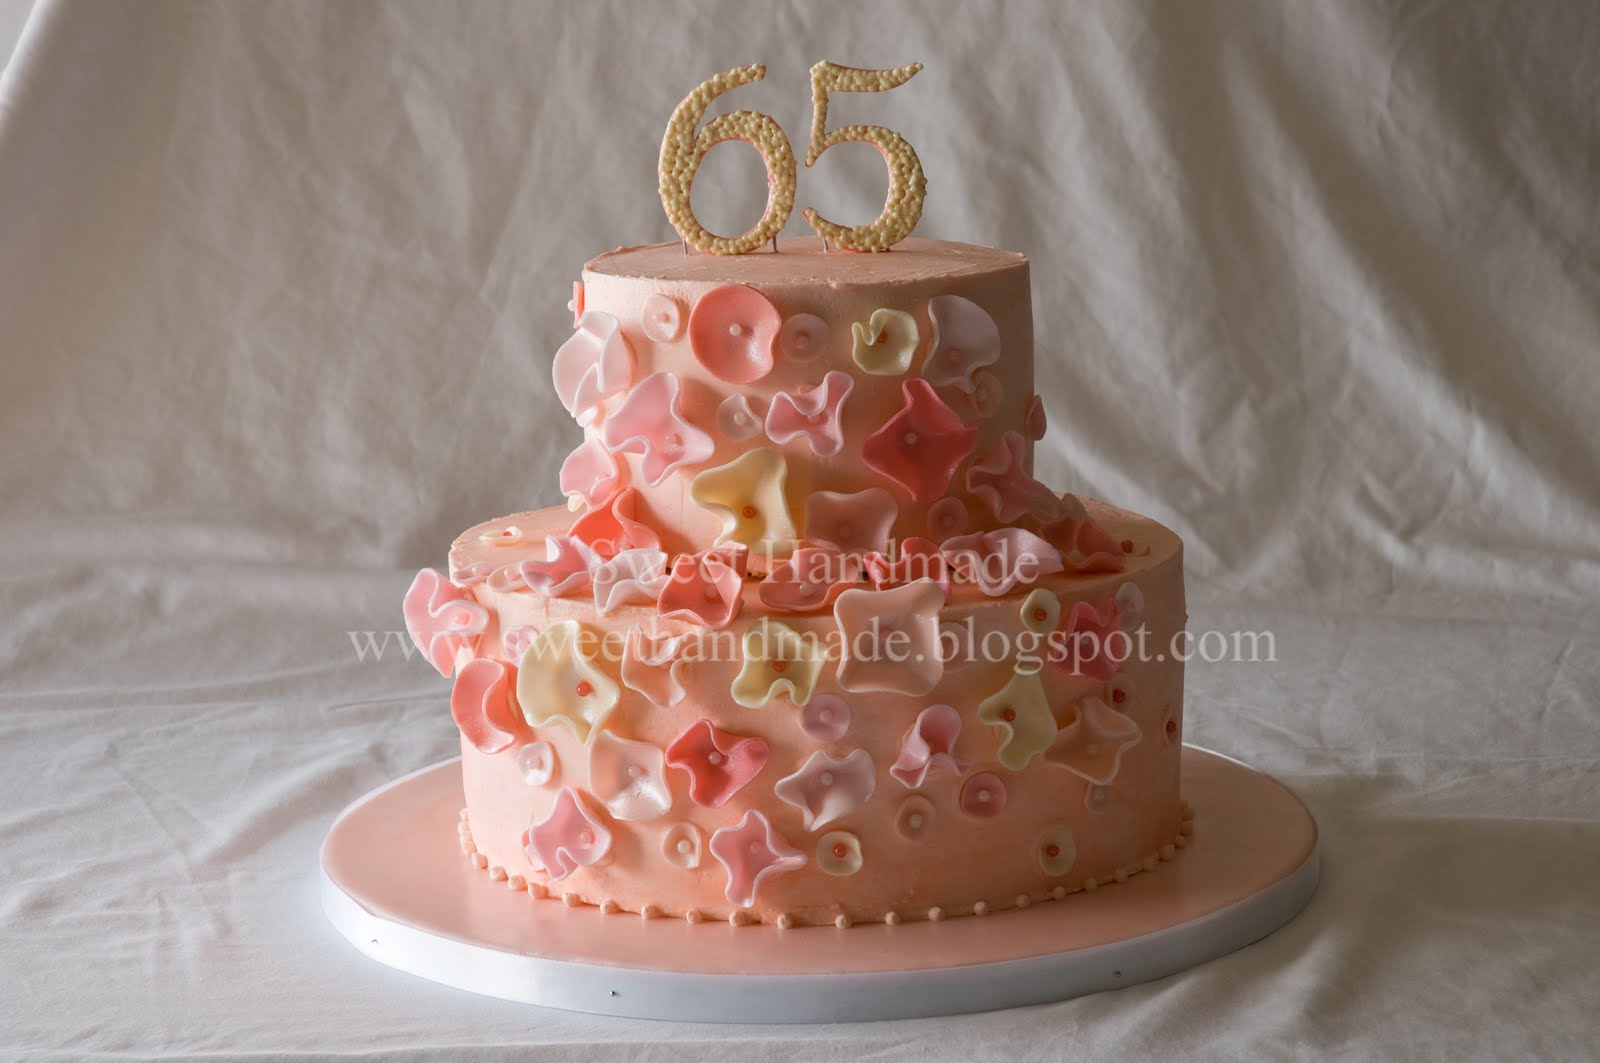 Sweet Handmade Cookies Fantasy Flower 65th Birthday Cake